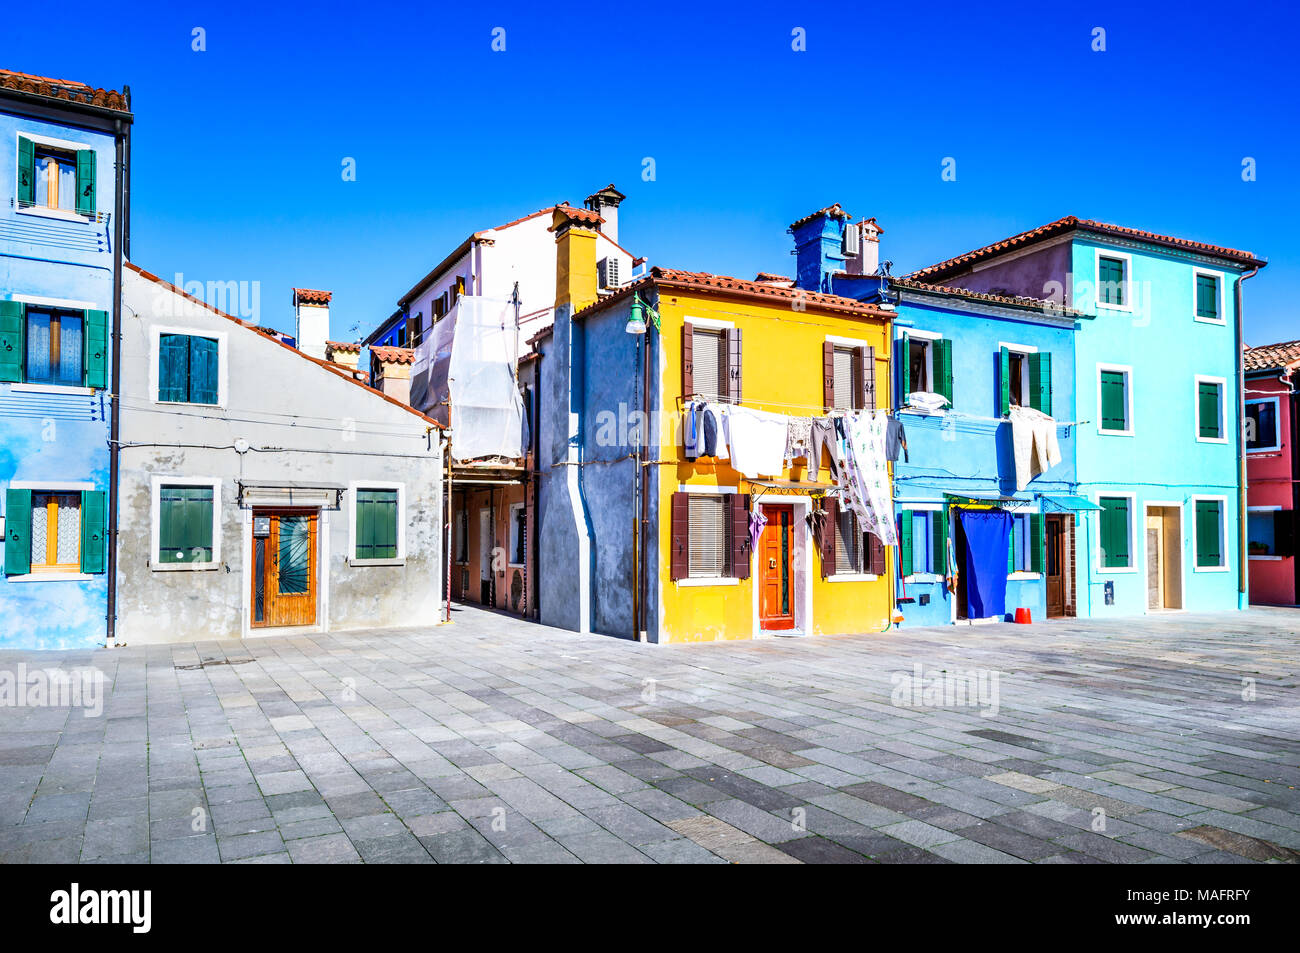 Burano, Venice. Image with colorful island from beautiful Veneto in Italy. - Stock Image